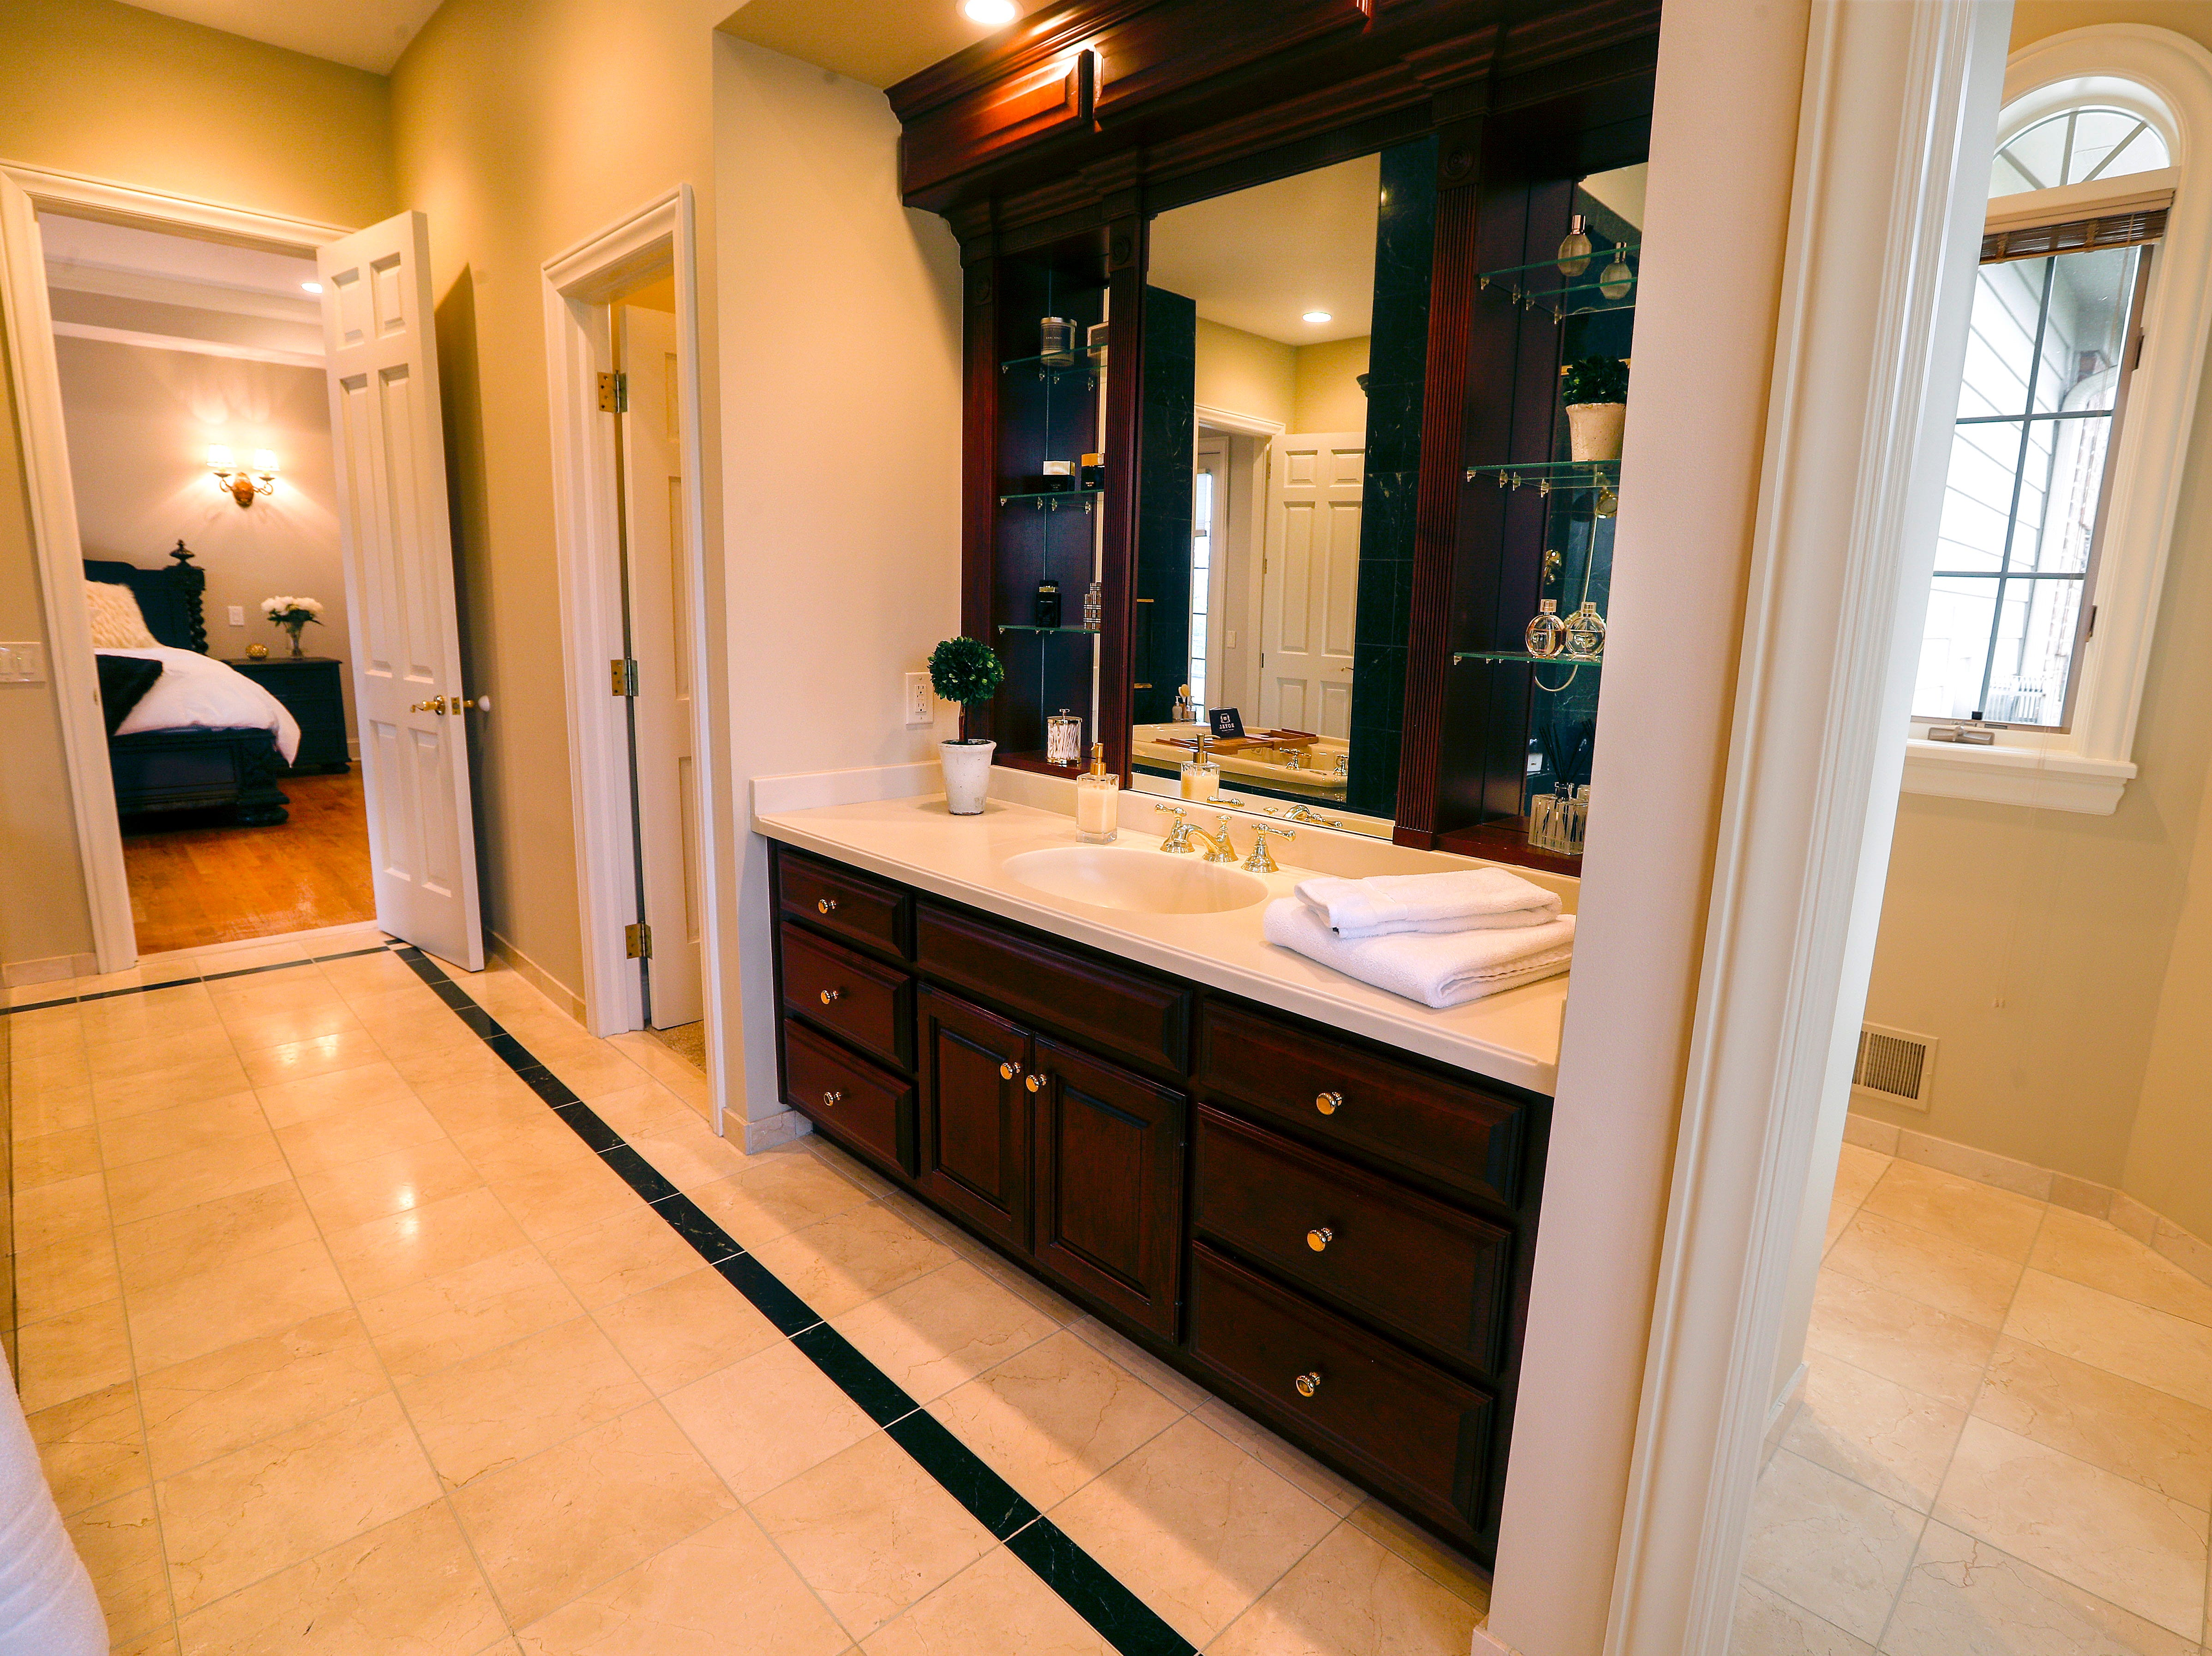 There are two individual areas in the master bathroom.